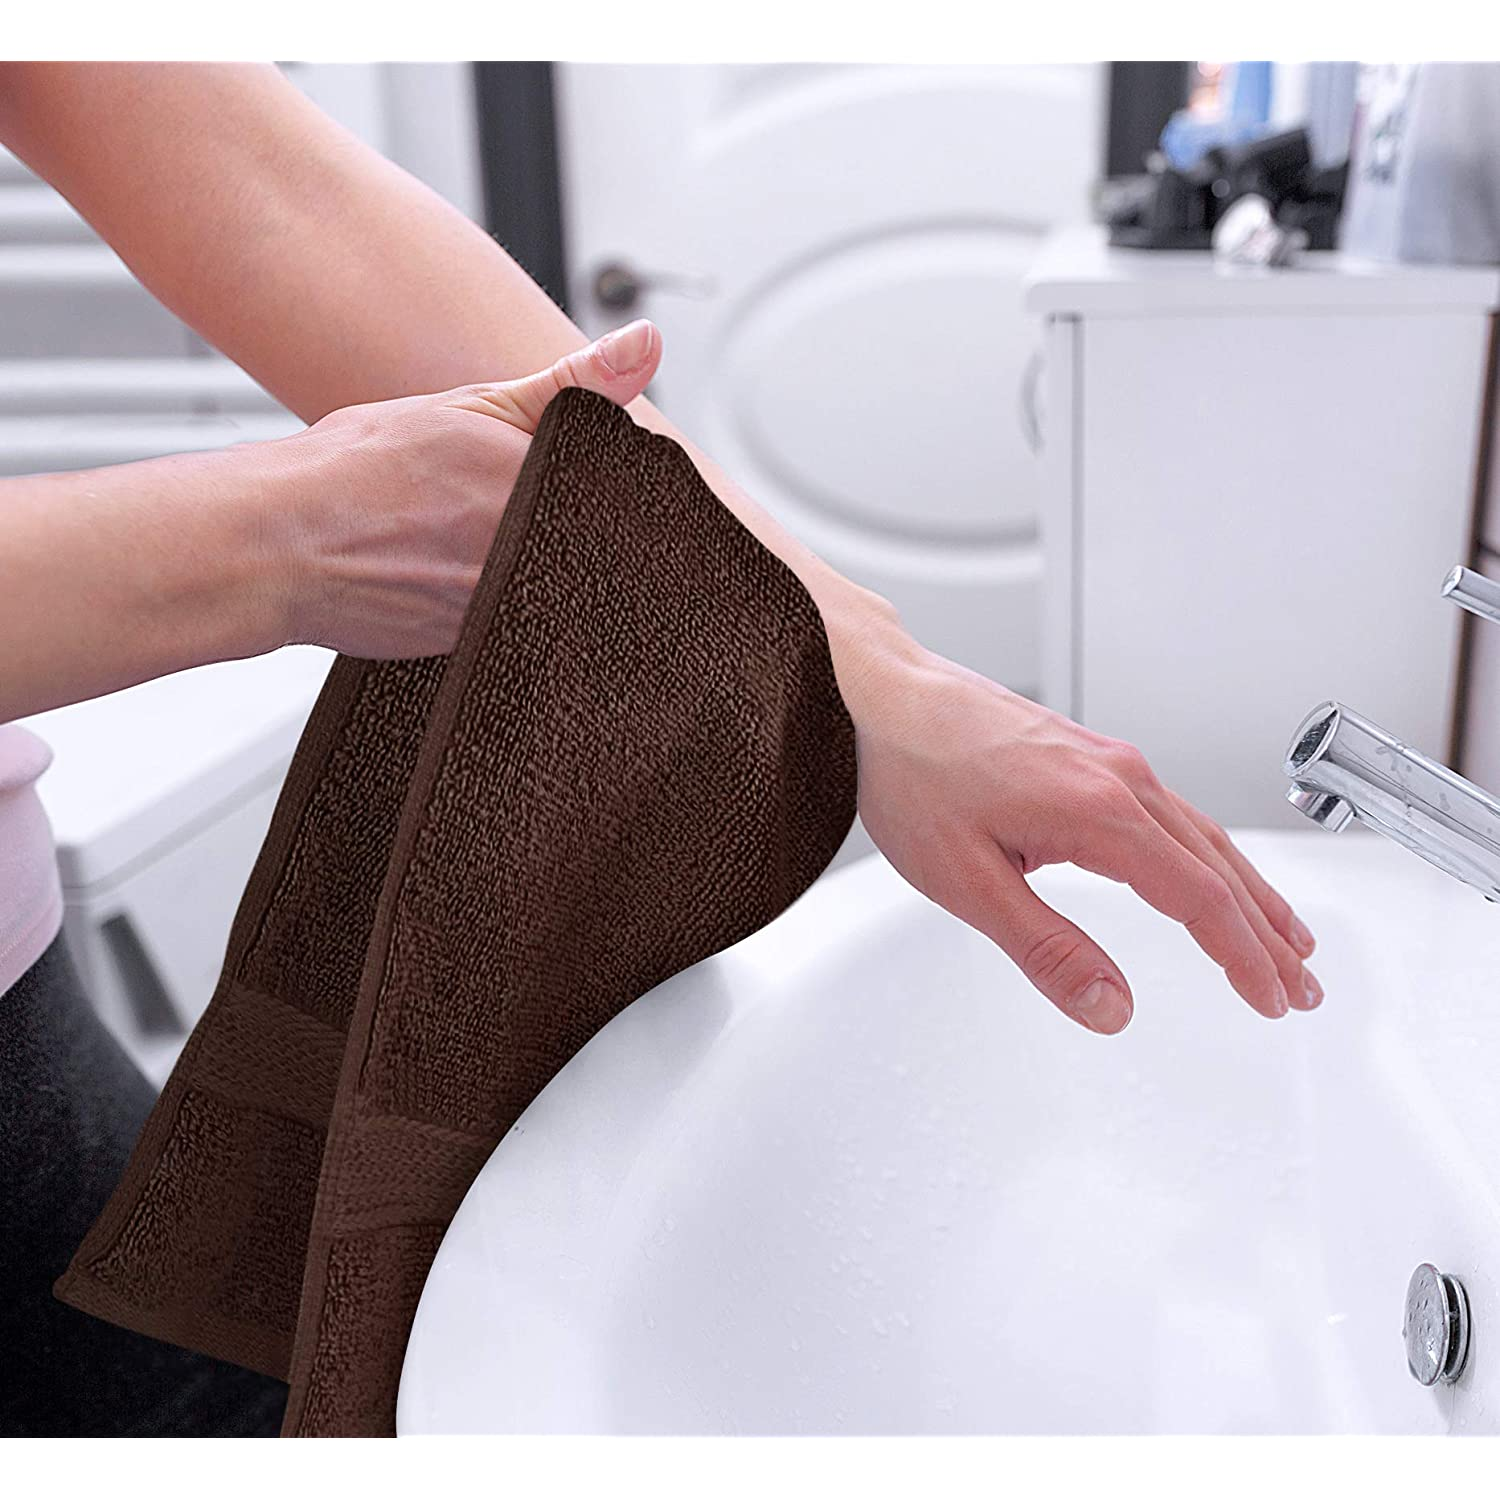 Hotel /& Spa Quality Hand Towels 6-Pack Utopia Towels Premium Dark Brown Hand Towels 100/% Combed Ring Spun Cotton Ultra Soft and Highly Absorbent 700 GSM Exrta Large Hand Towels 16 x 28 inches